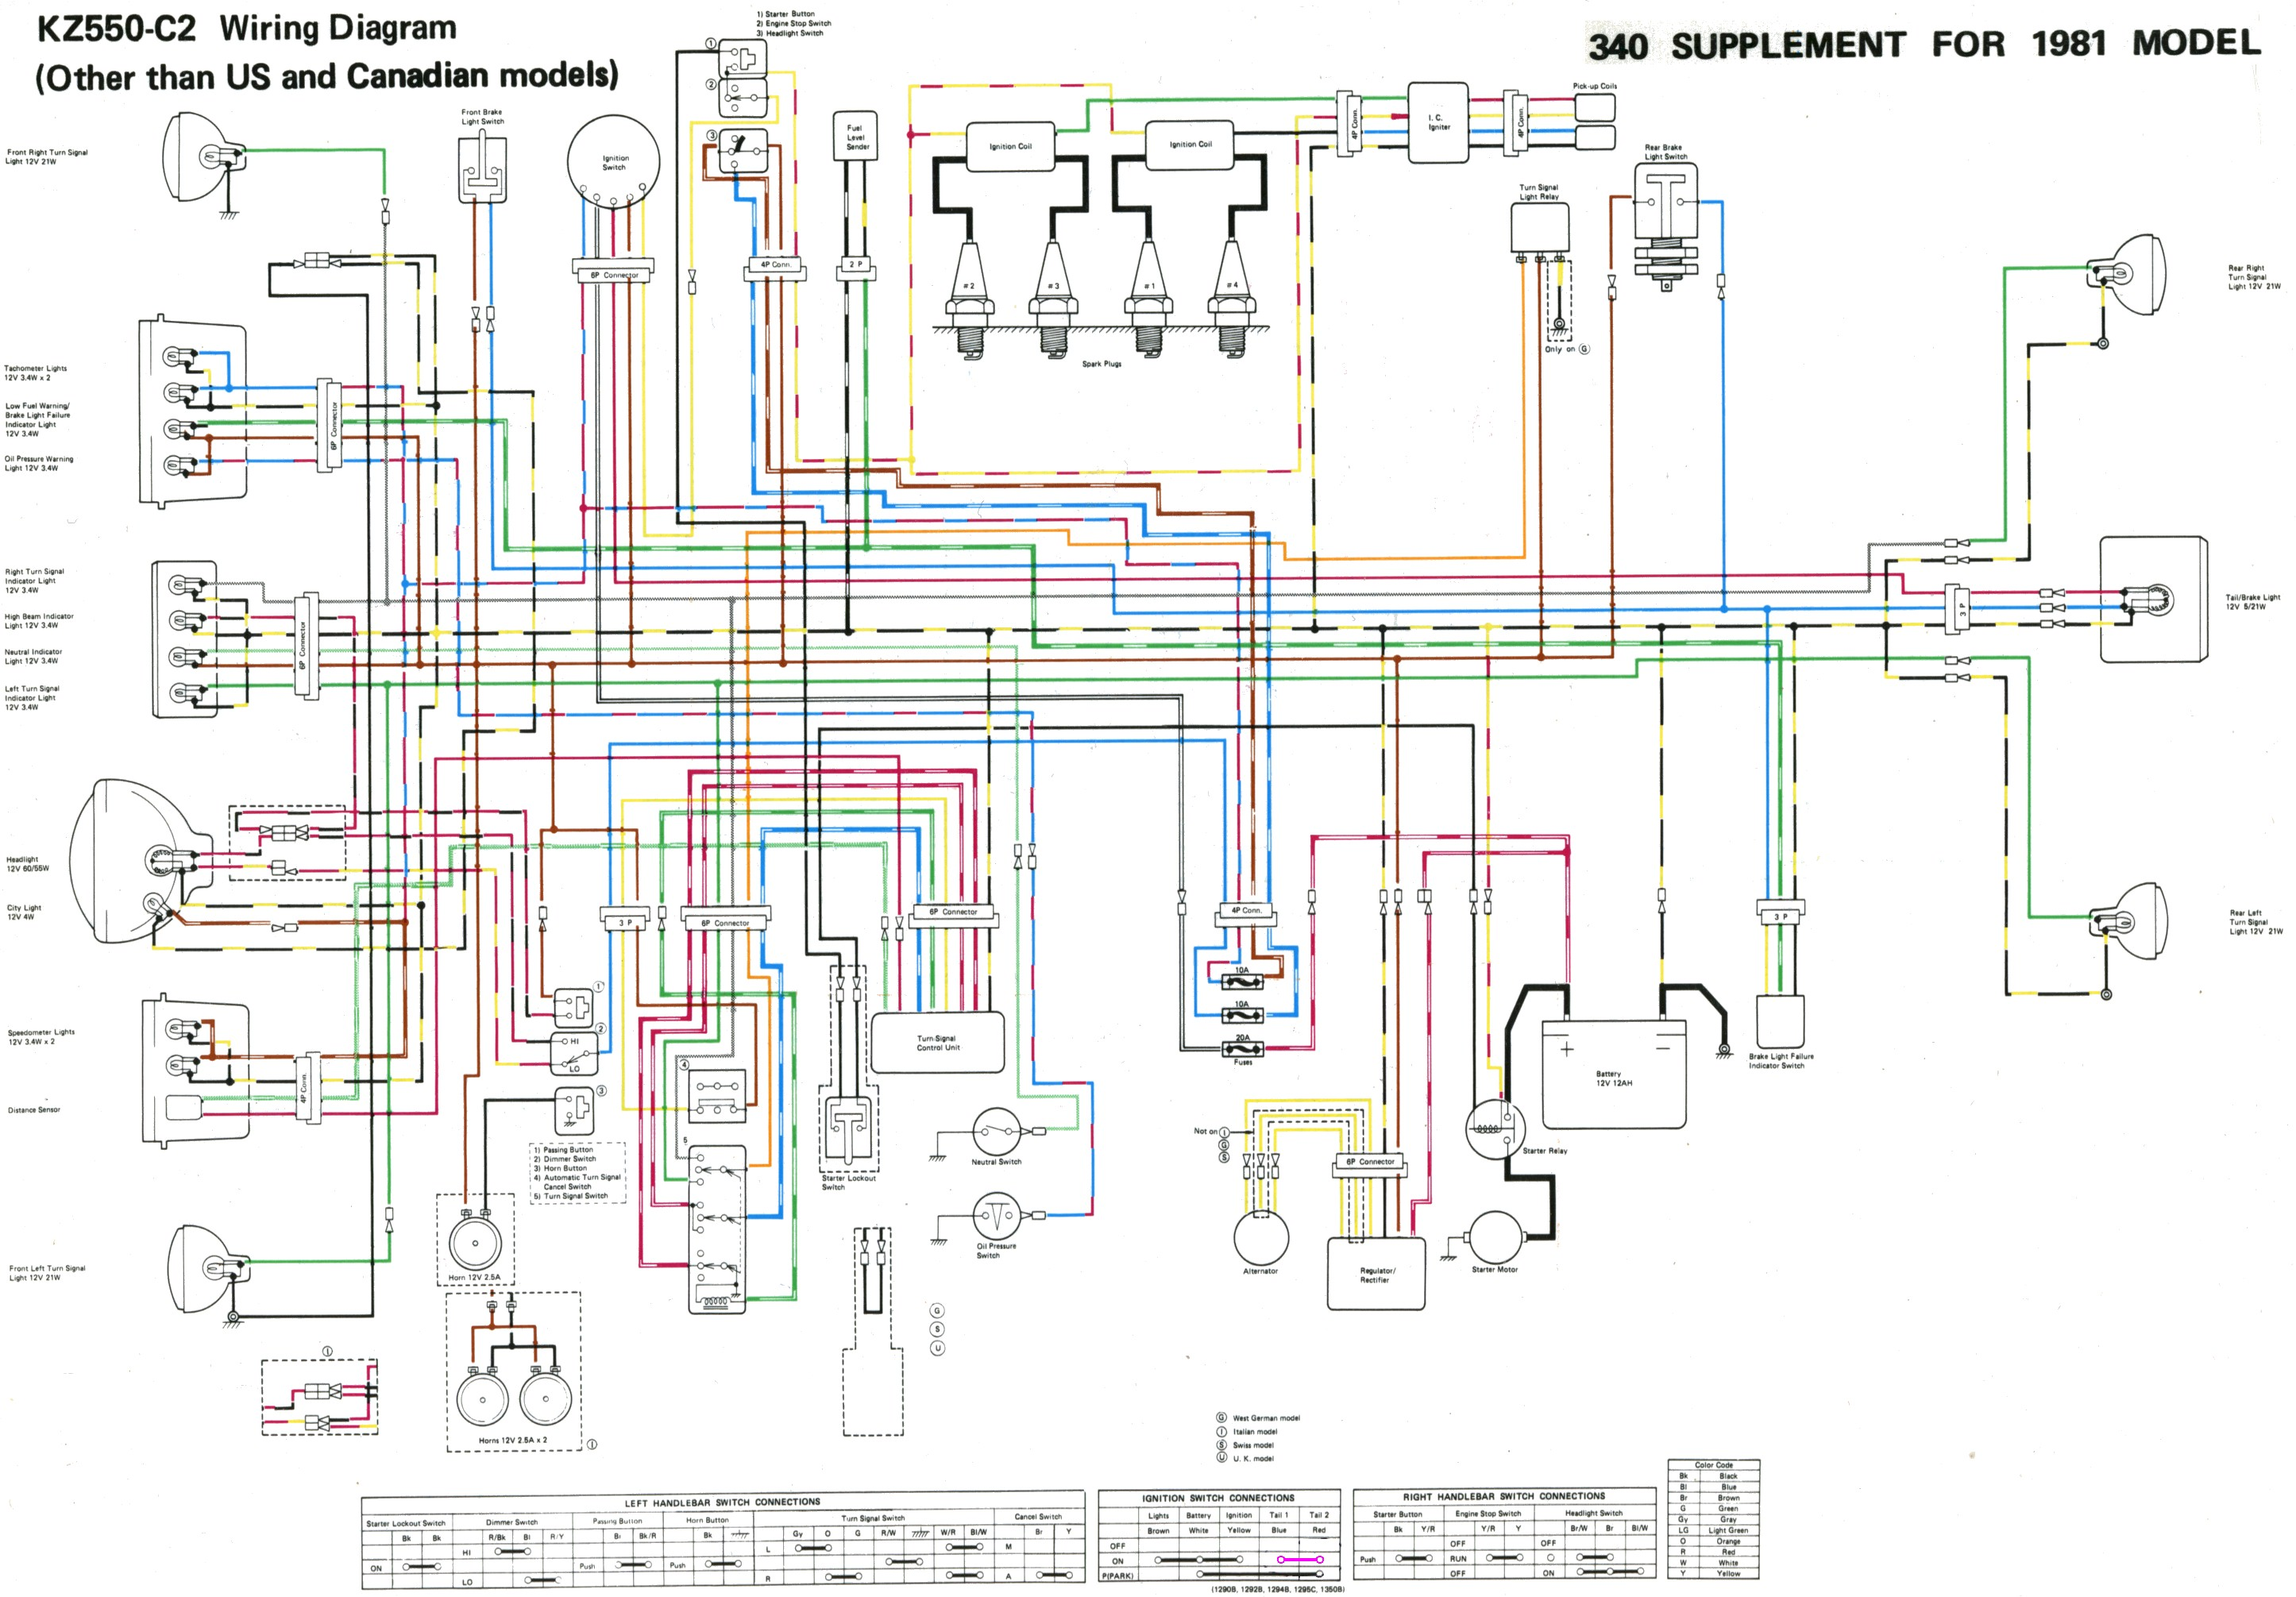 Kawasaki Kz550 Wiring Diagram | Wiring Diagram on honda motorcycle repair diagrams, electrical diagrams, pinout diagrams, engine diagrams, troubleshooting diagrams, lighting diagrams, motor diagrams, switch diagrams, smart car diagrams, gmc fuse box diagrams, internet of things diagrams, hvac diagrams, sincgars radio configurations diagrams, series and parallel circuits diagrams, electronic circuit diagrams, friendship bracelet diagrams, led circuit diagrams, battery diagrams, transformer diagrams,